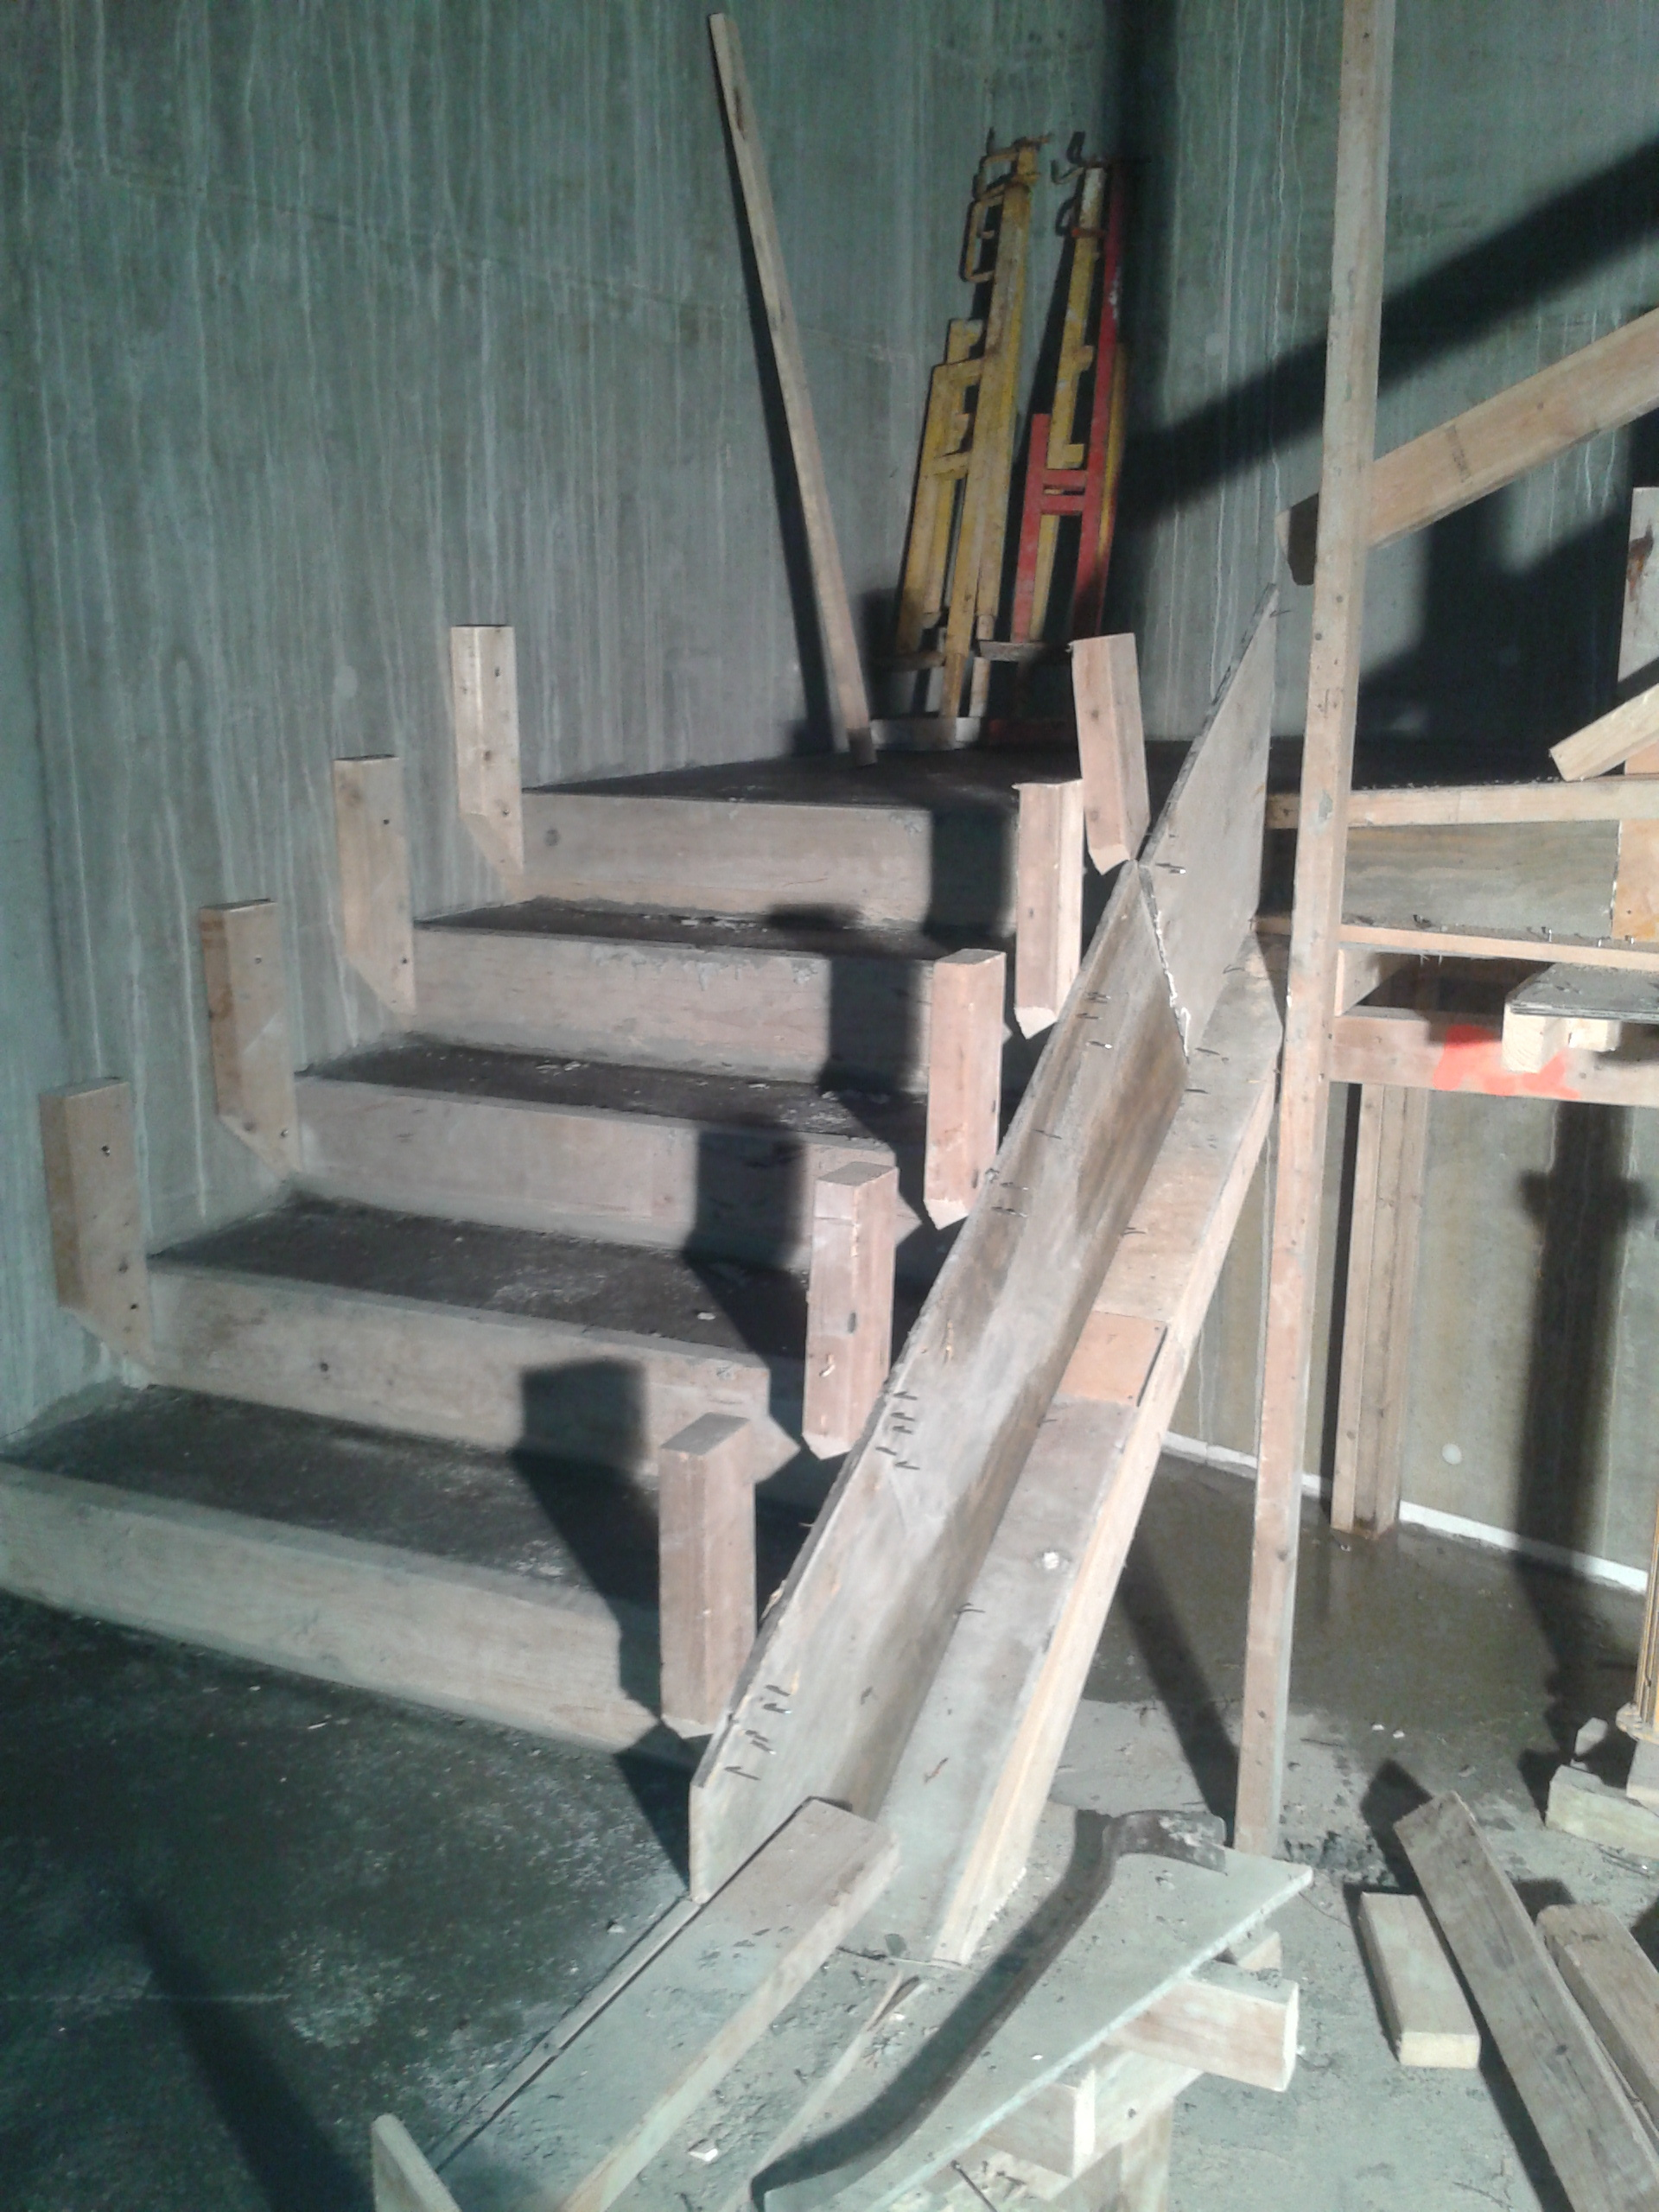 Siding, and stairs - Sins this is a starwell it is concrete wall at one side and only needed to make one siding, when we make the forms that makes to stari we take a 2x6 or 2x8 depends on the high off your Unit height when we cut them with 45 degree angle to the same height at the unit height when u have that 45 degree angle its possible for u to get all the way into the corner off the Unit step finish the concrete. so you make all off them then you nail on this 2x4 behind and fasten the one side to the concrete wall and the other to the siding, make sure to nail it good as you need to be able to walk on them when pouring and finishing the concrete.